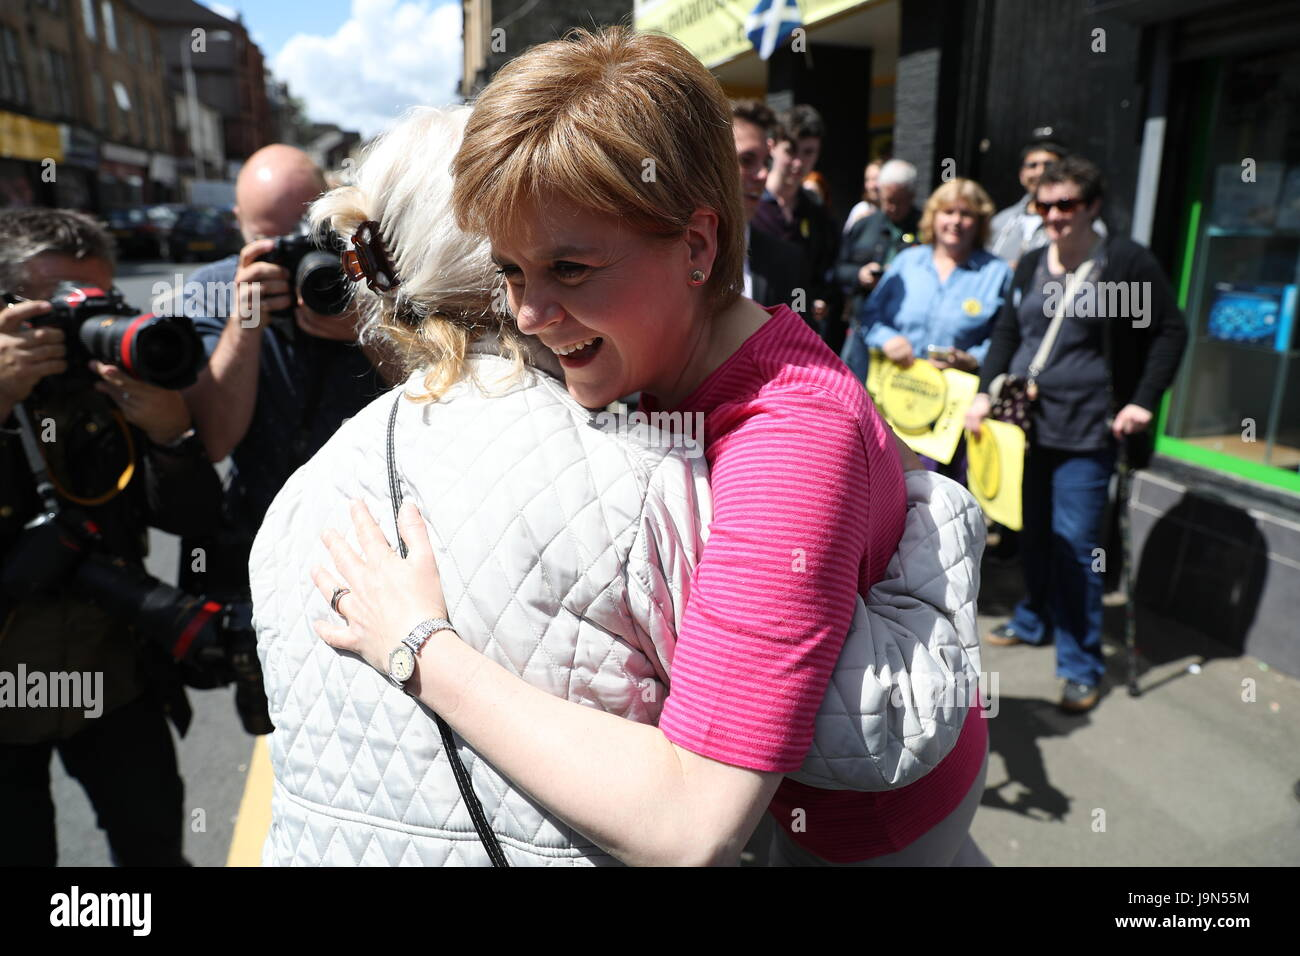 First Minister Nicola Sturgeon (right) is greeted by Helen, the mother of the SNP's local candidate Mhairi Black, Stock Photo